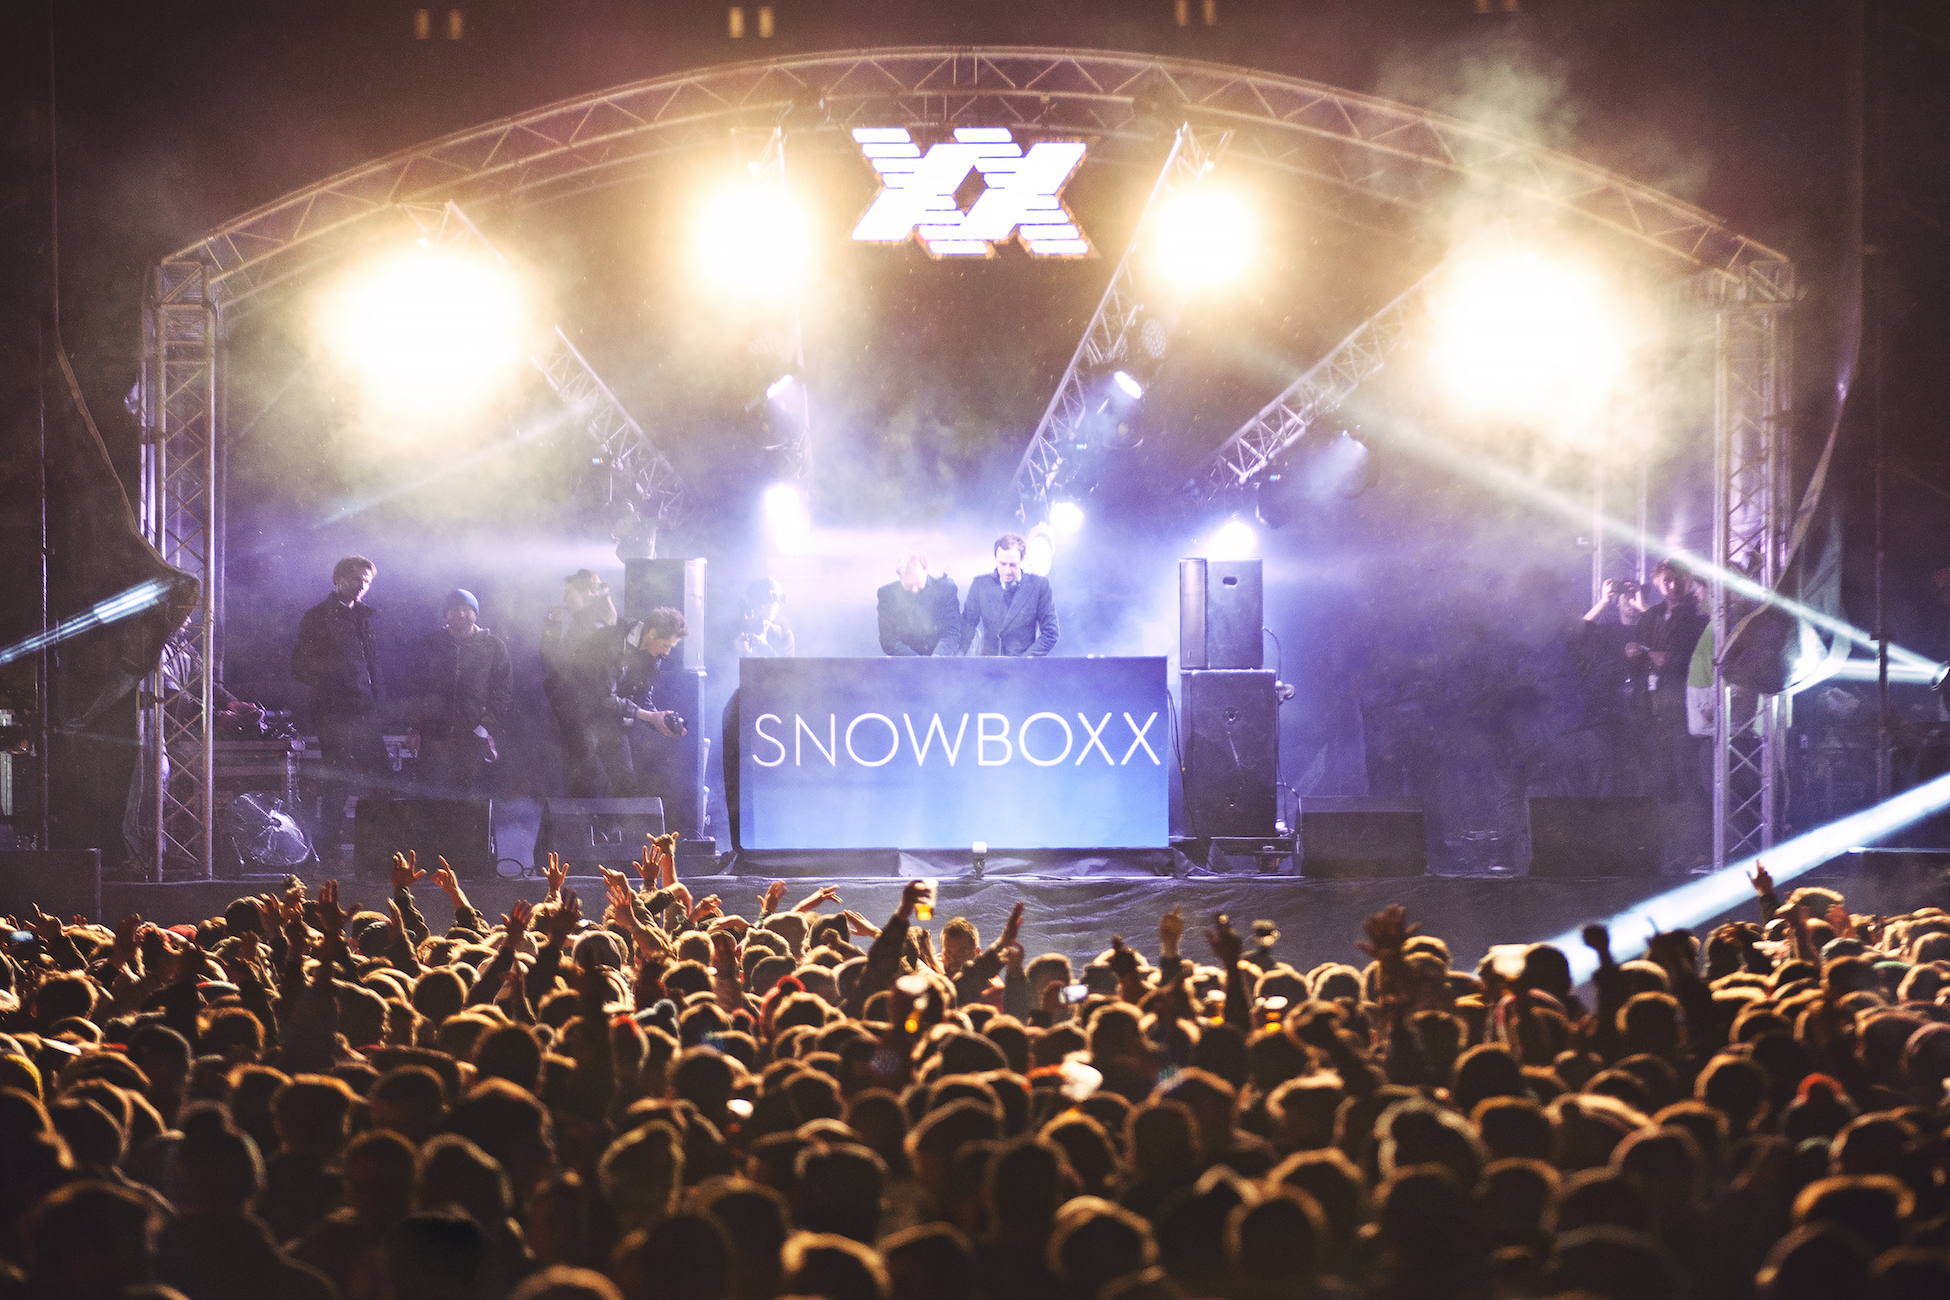 snowboxx-main-stage-event-production-alpine